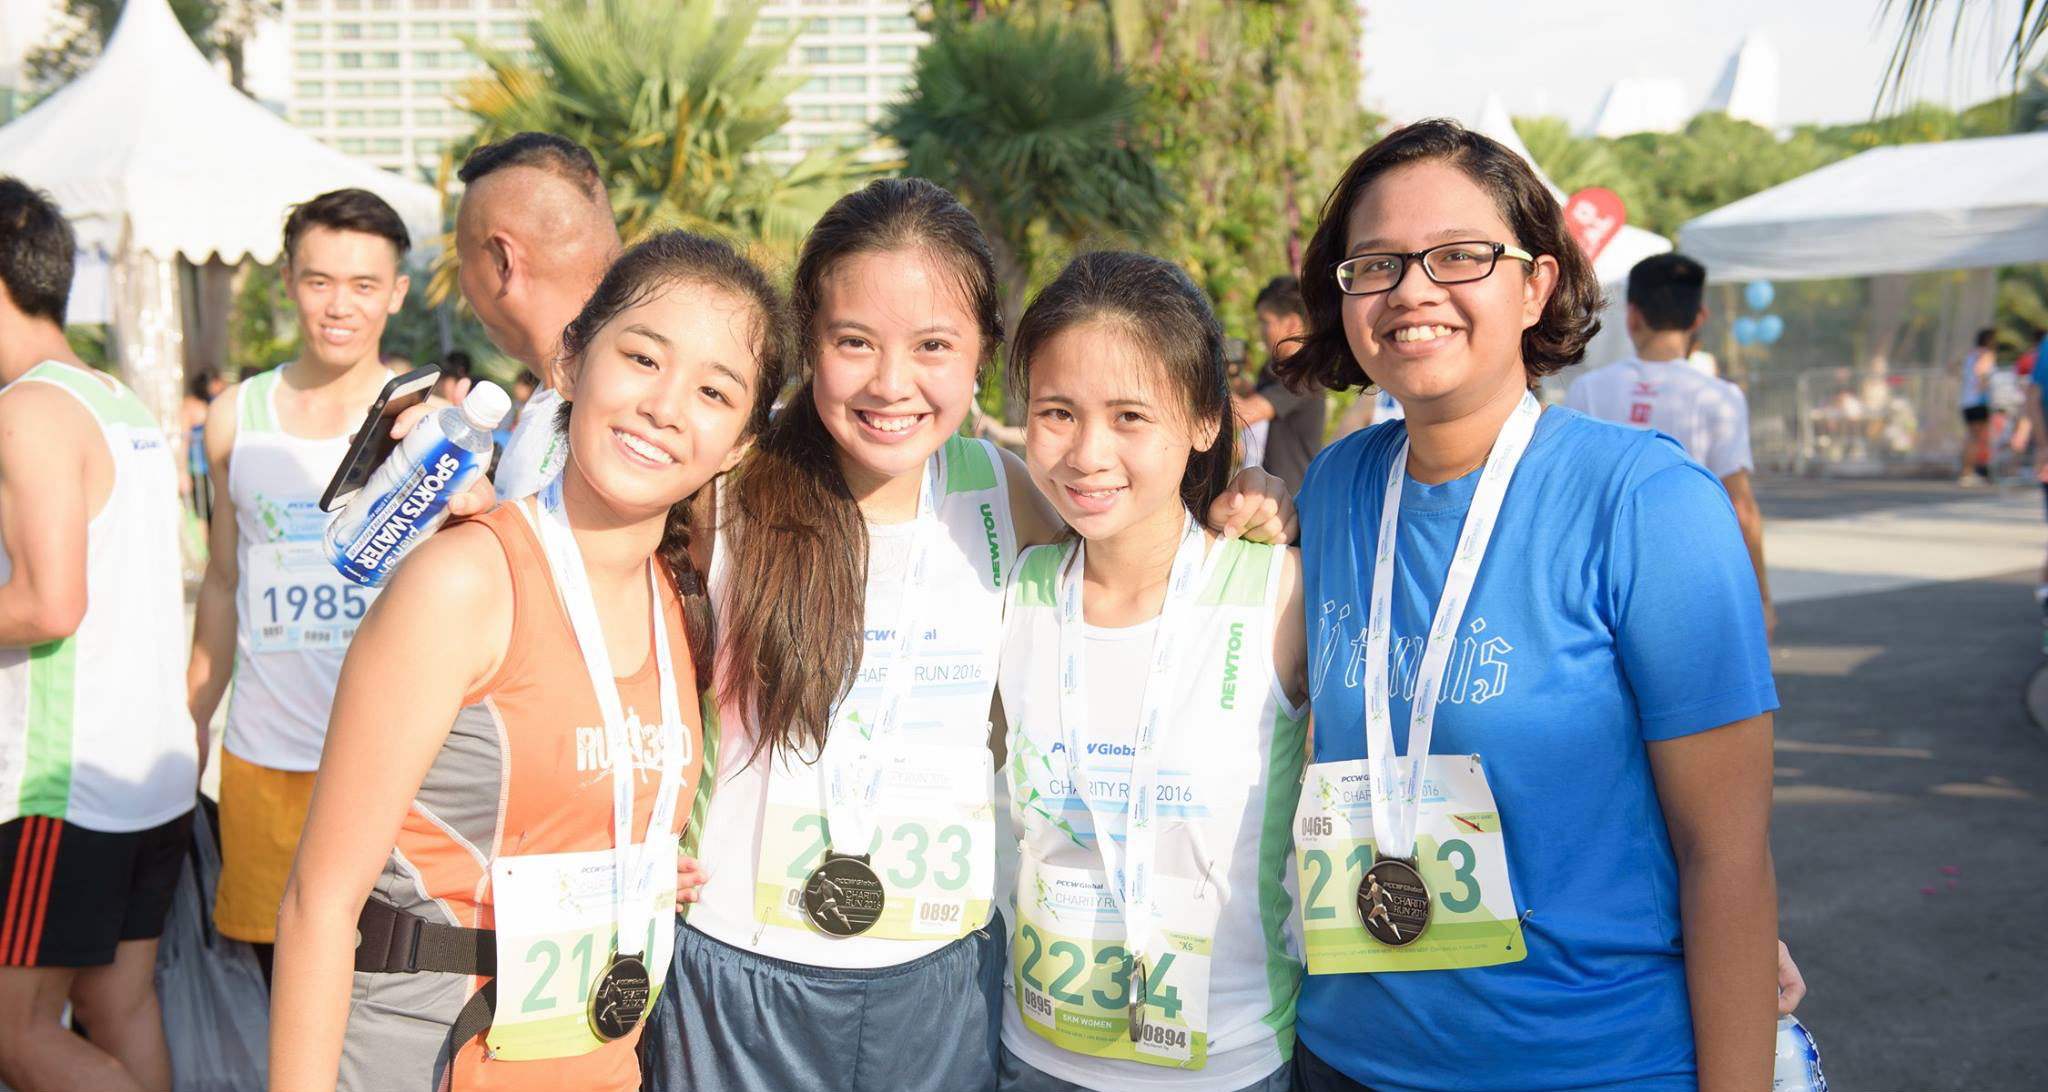 How You as a Runner Can Help to Grant the Wishes of Children with Life-Threatening Illnesses